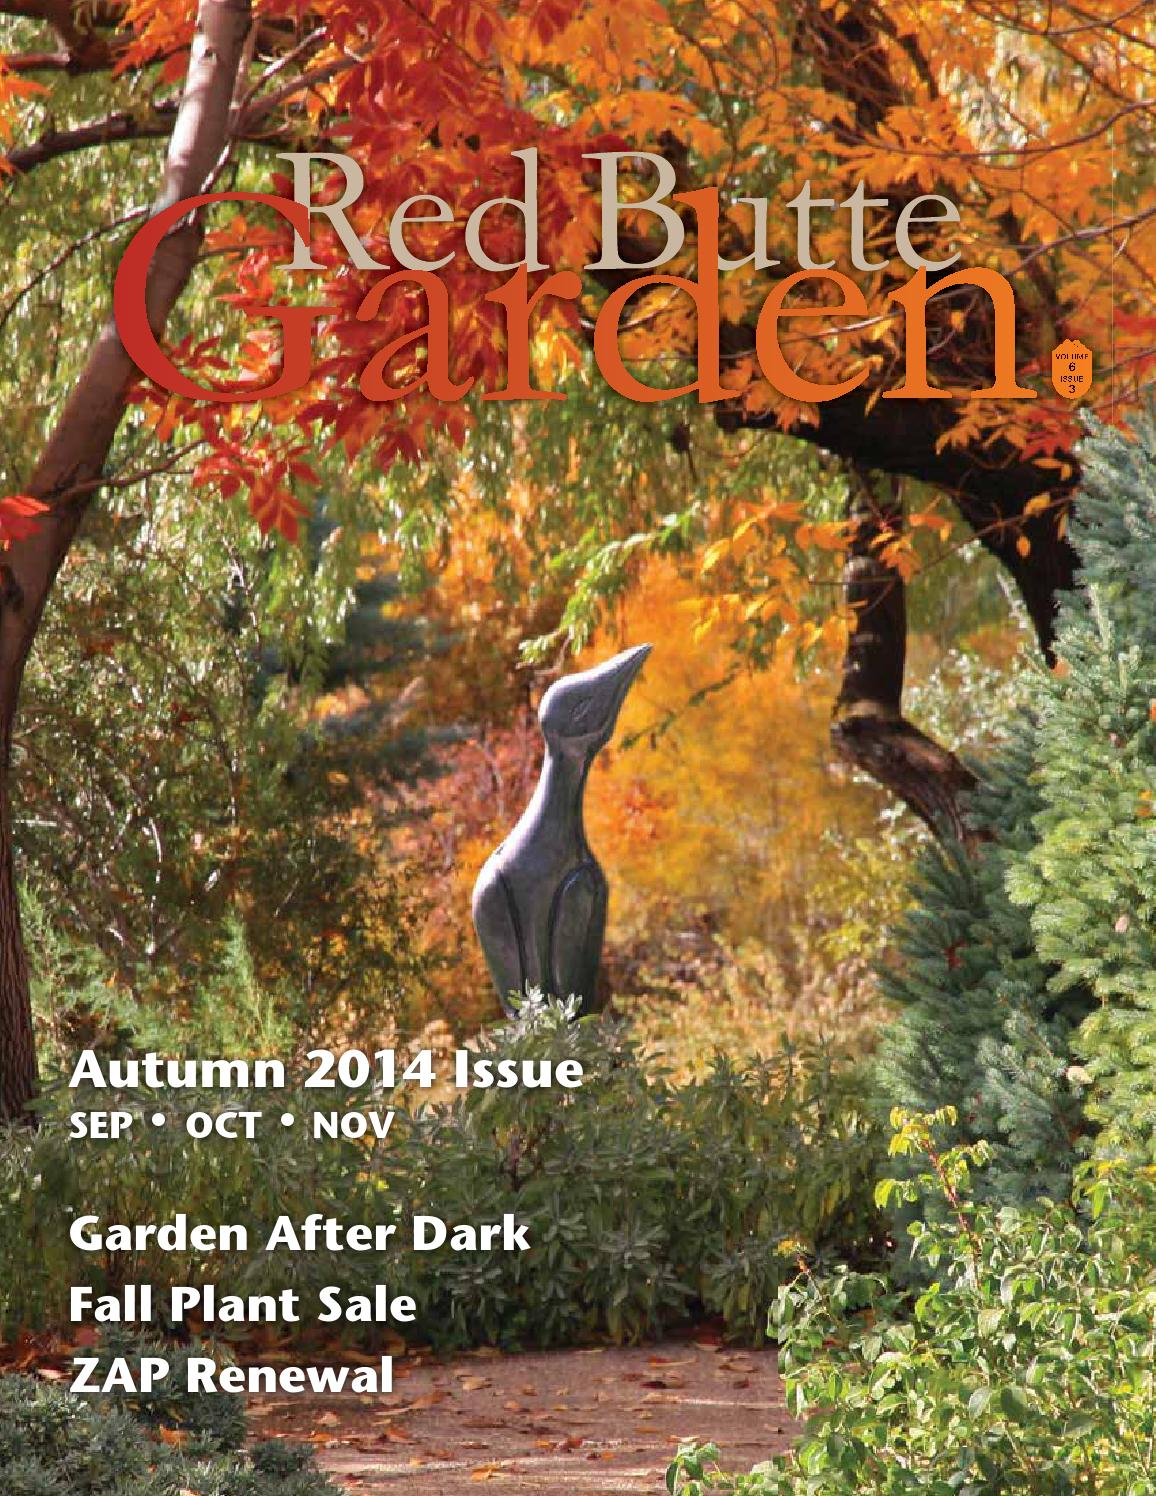 Red Butte Garden Fall 2014 Newsletter by Red Butte Garden - issuu